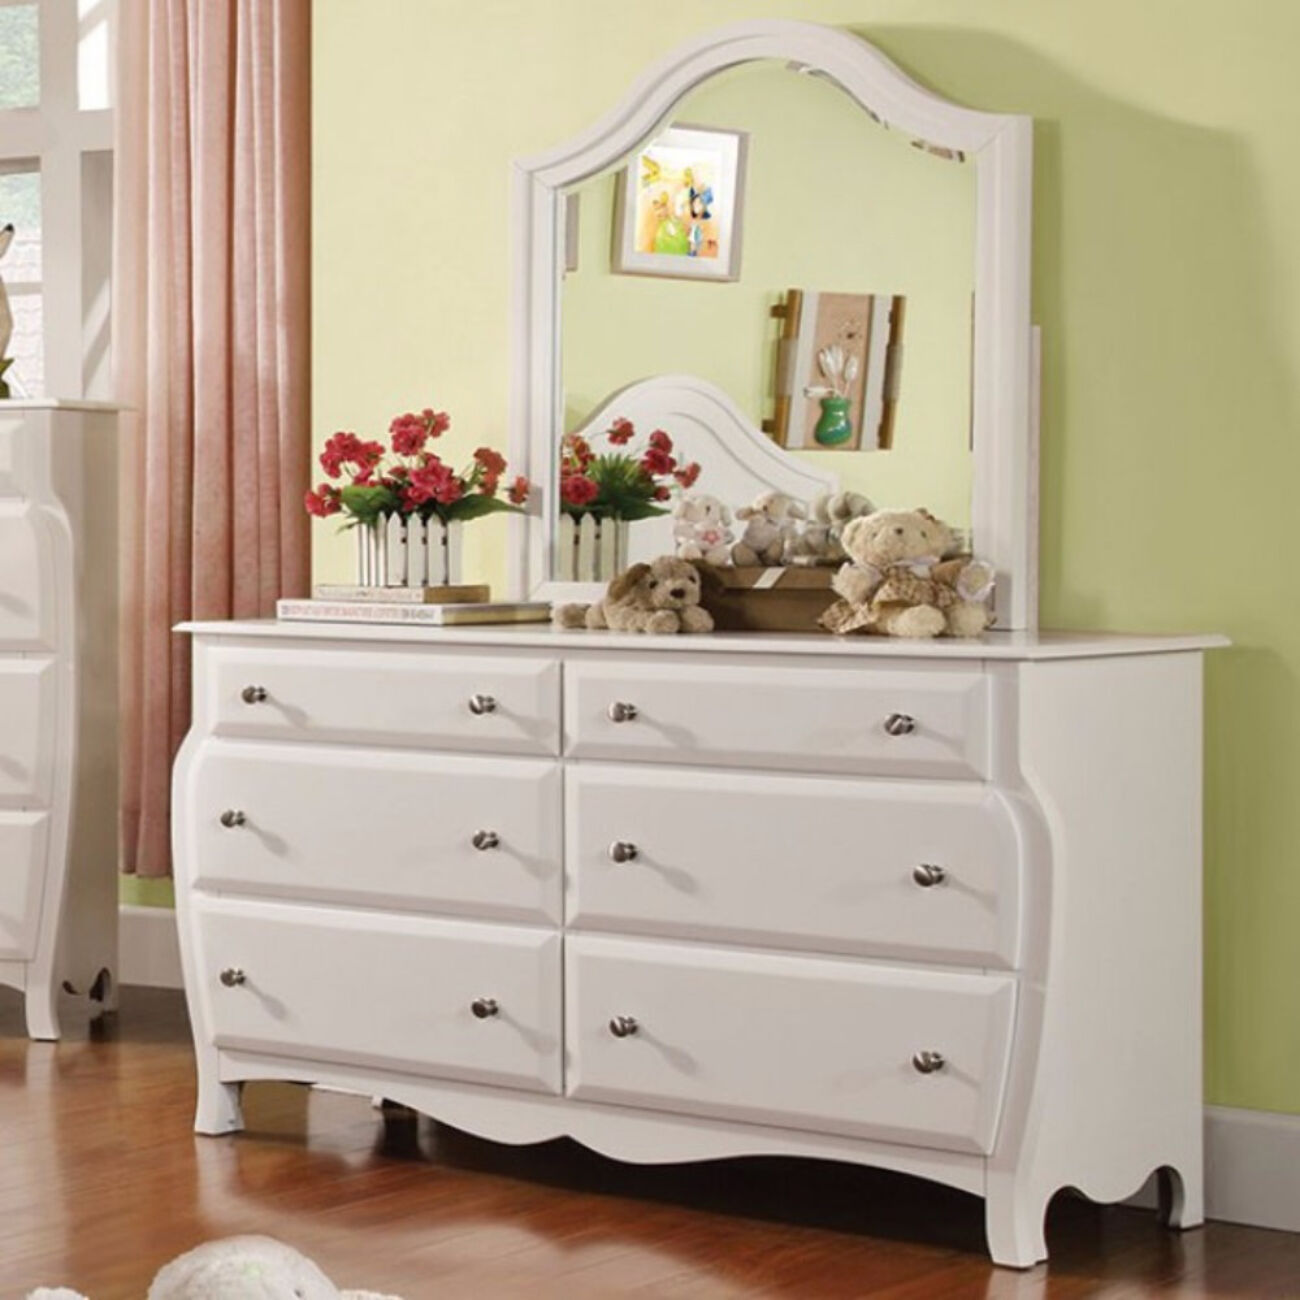 Wooden Nightstand with 3 Drawers and Metal Handles, White and Silver